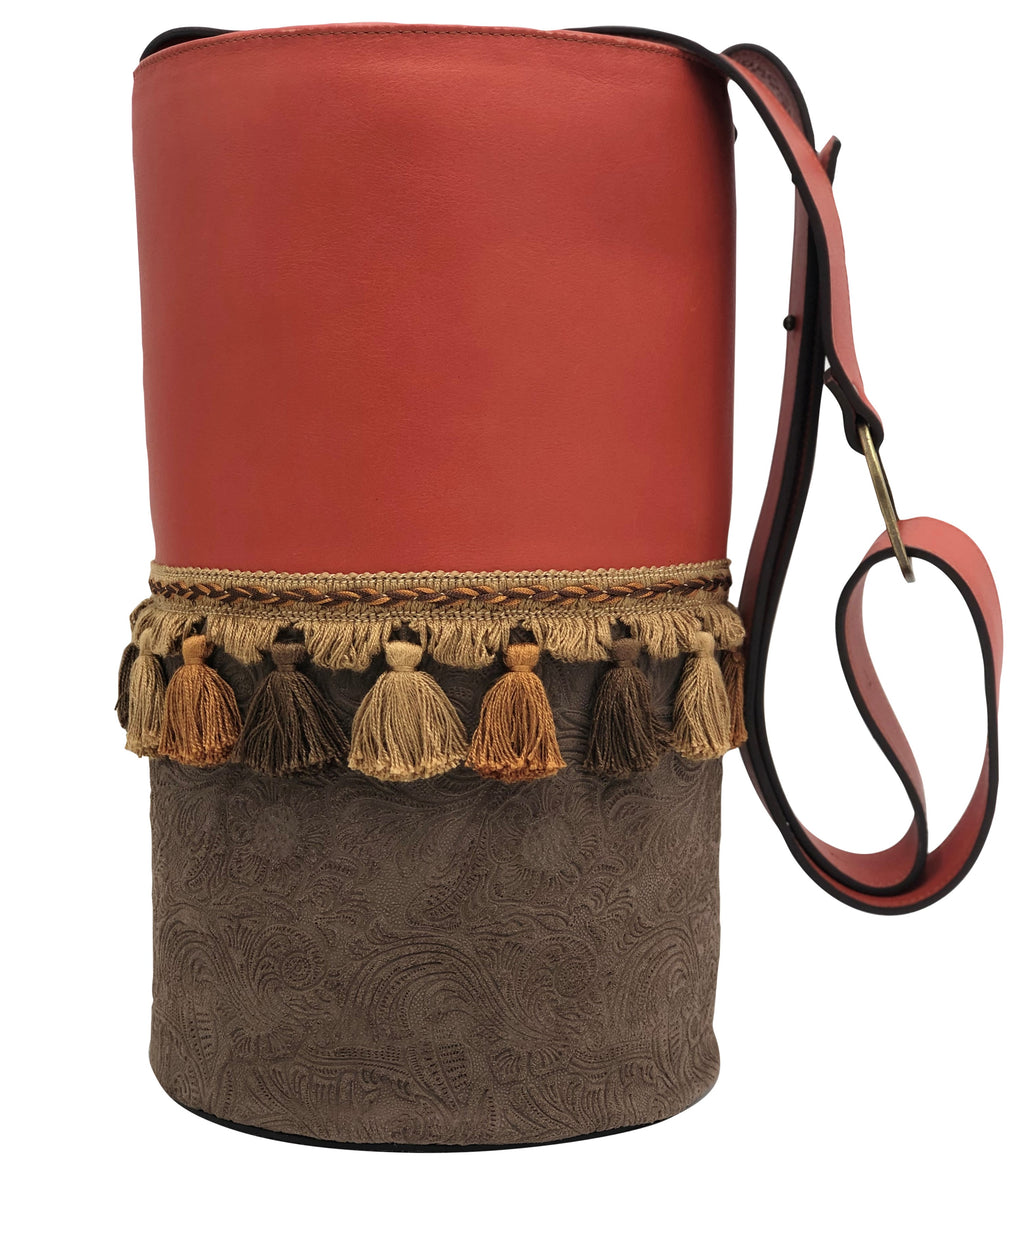 Red & engraved brown leather bag with tassels.